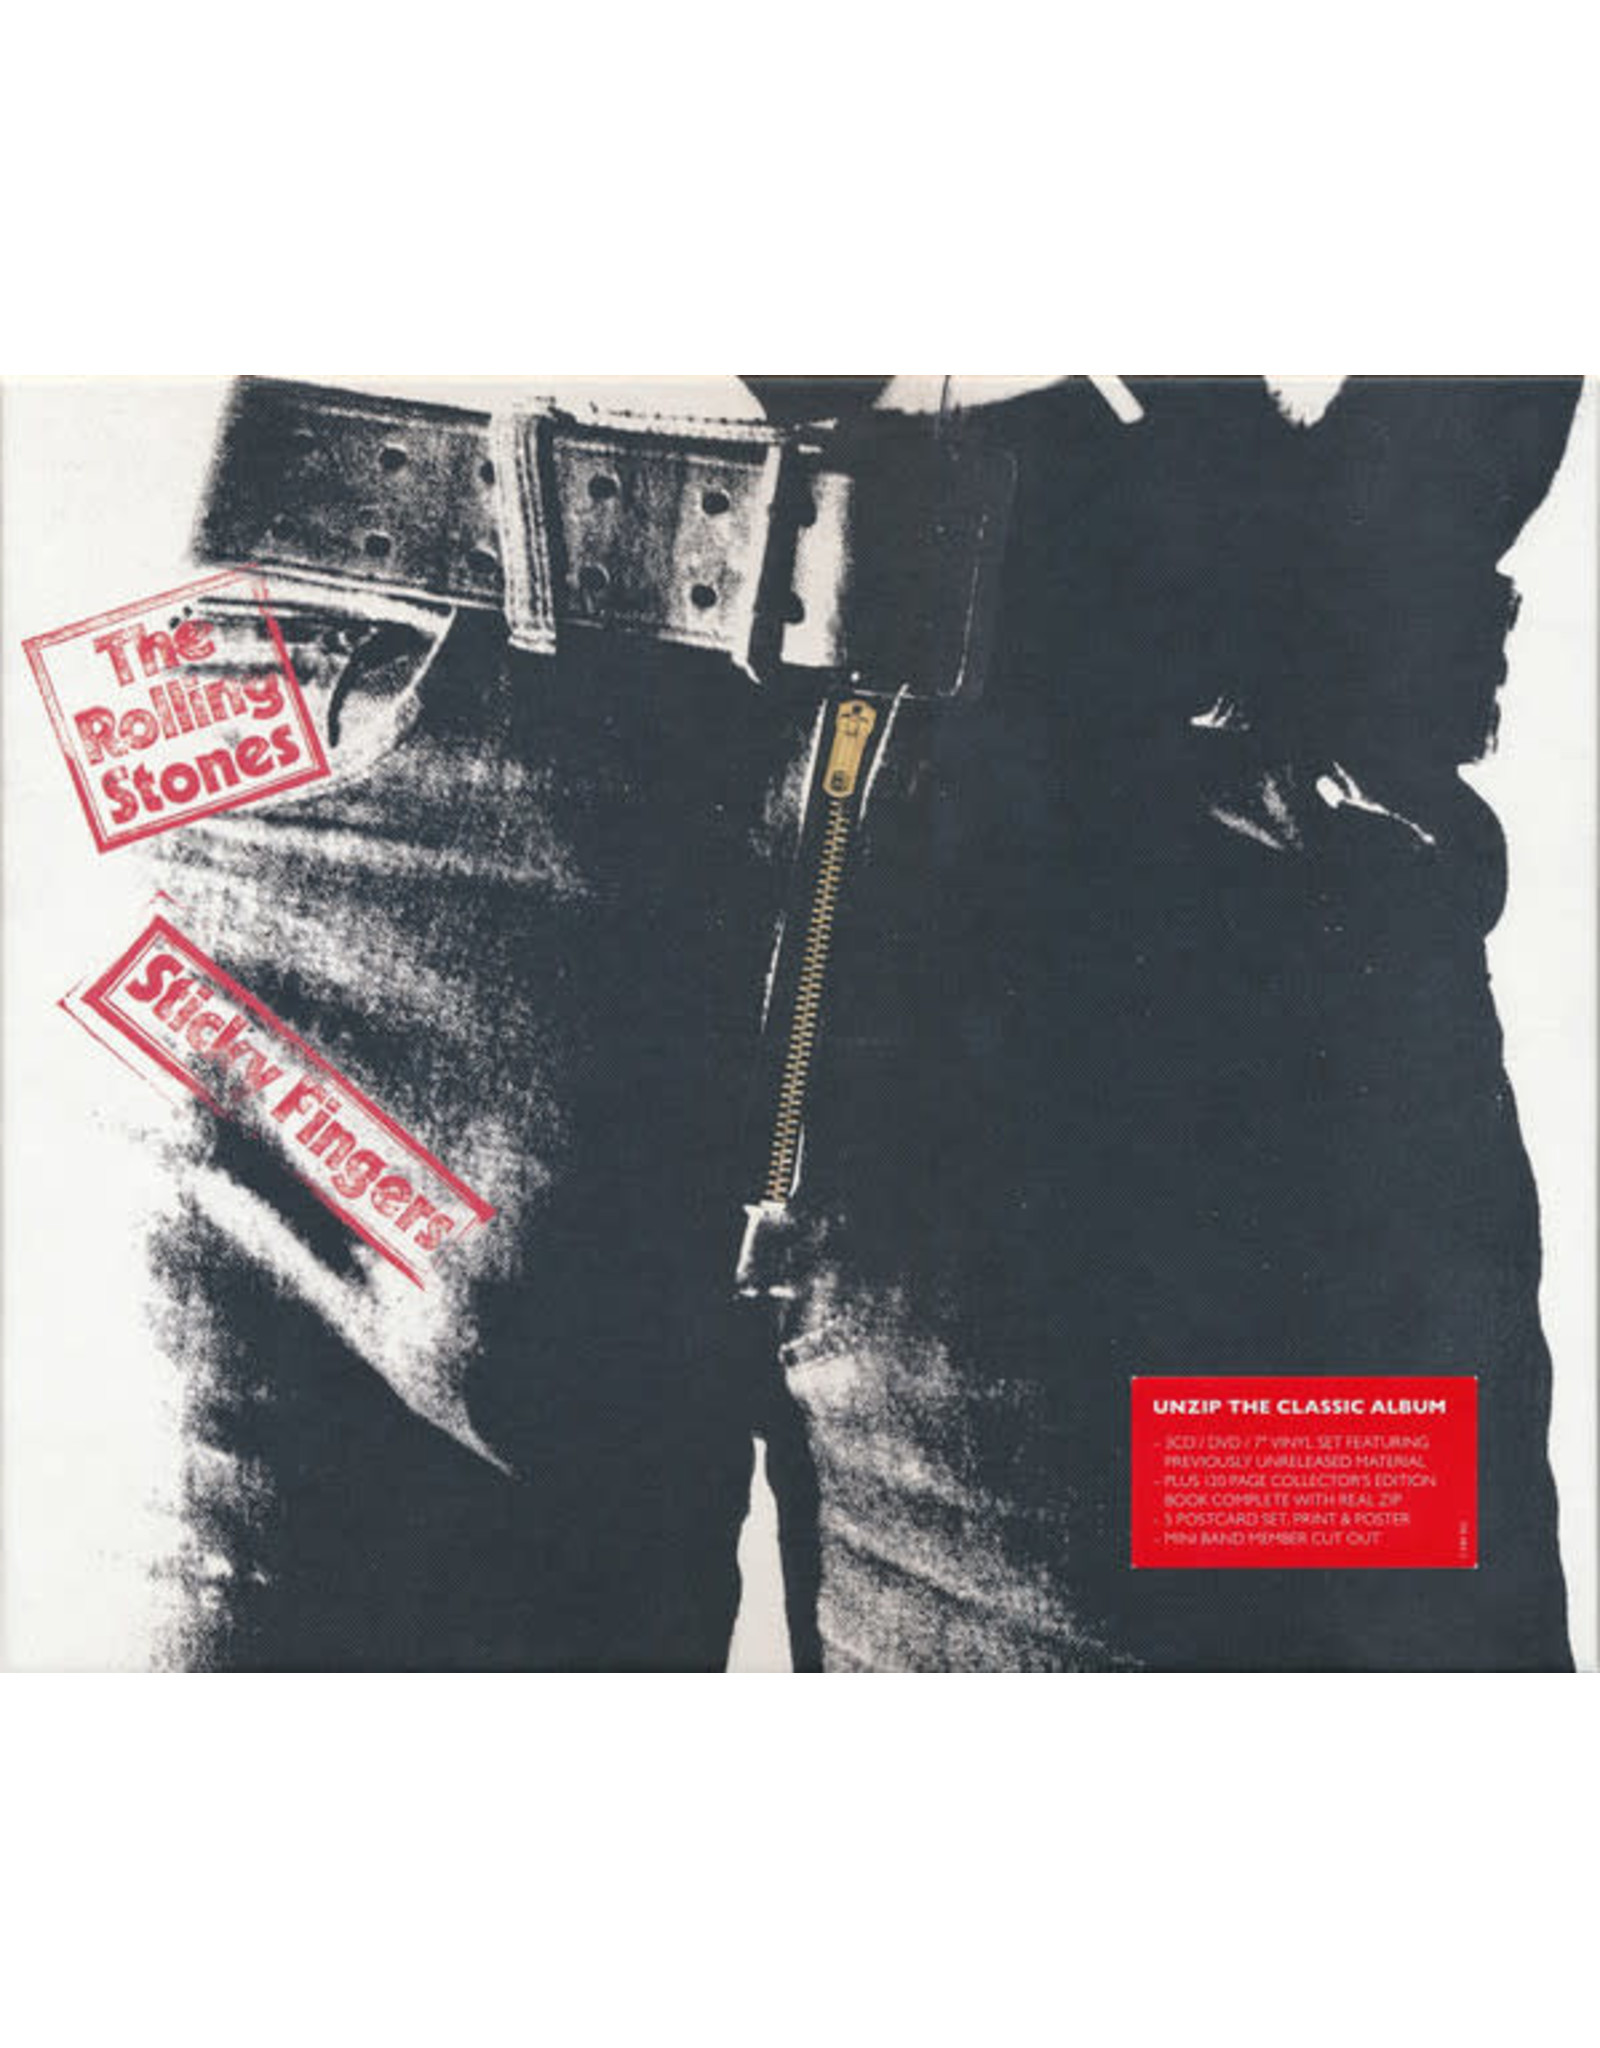 Rolling Stones - Sticky Fingers (Super dlx edition) CD